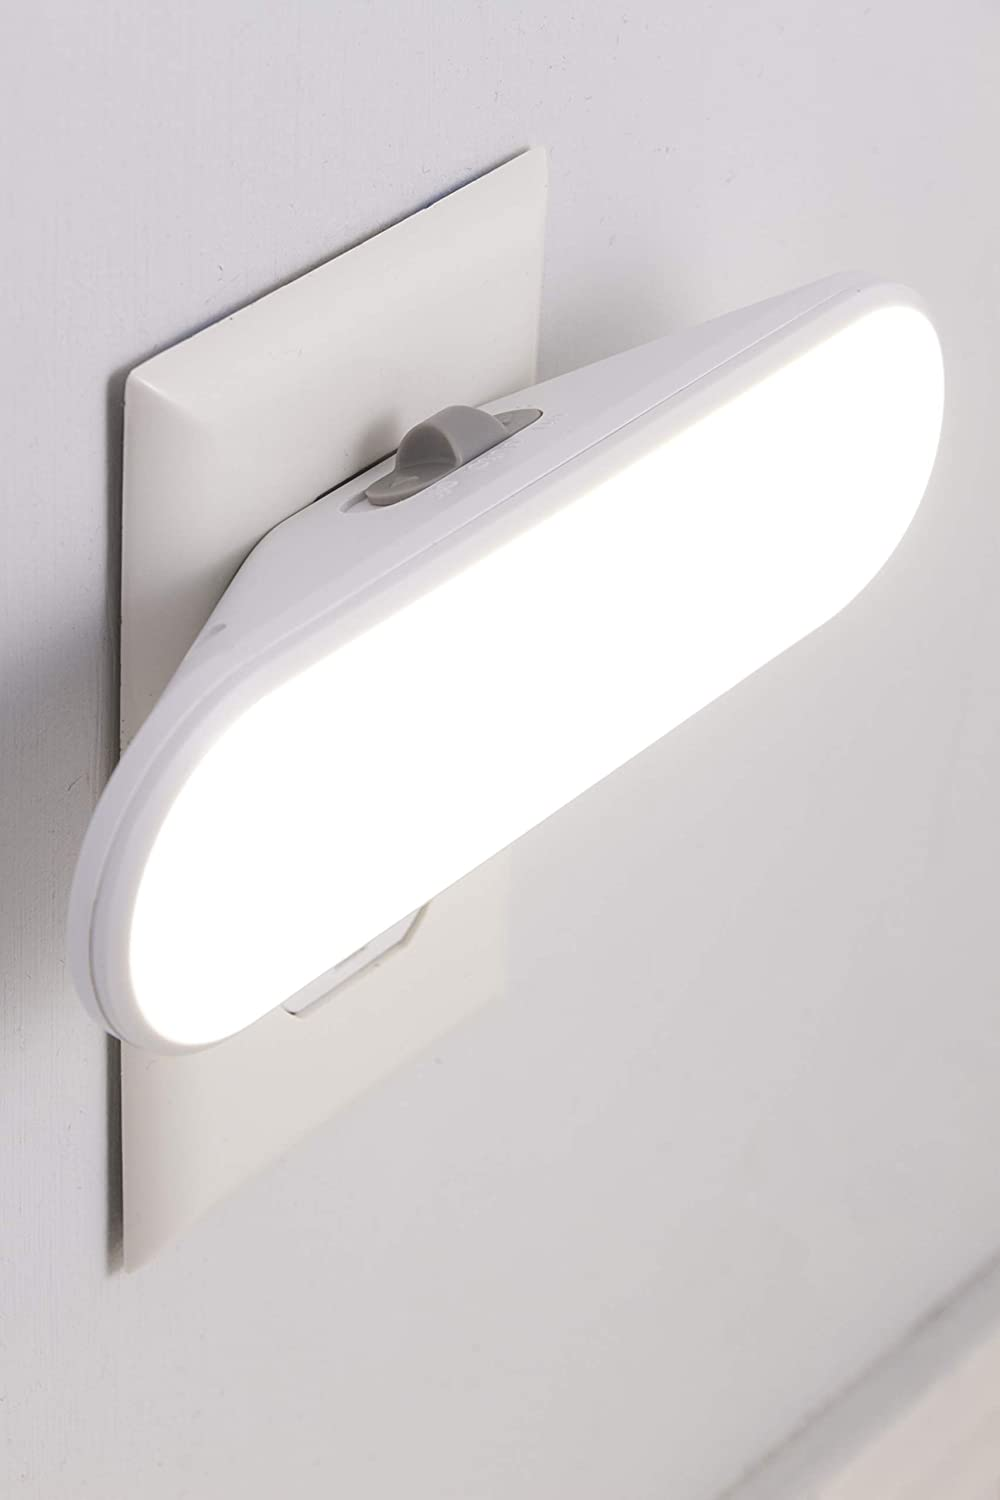 GE 12498 Ultrabrite LED Bar, Night Plug-in, Light Sensing, Auto/On/Off Switch, Ideal for Bedroom, Bathroom, Hallway, Stairs, Kitchen, Pantry, Closet and Laundry, Up to Up to 100 Lumens